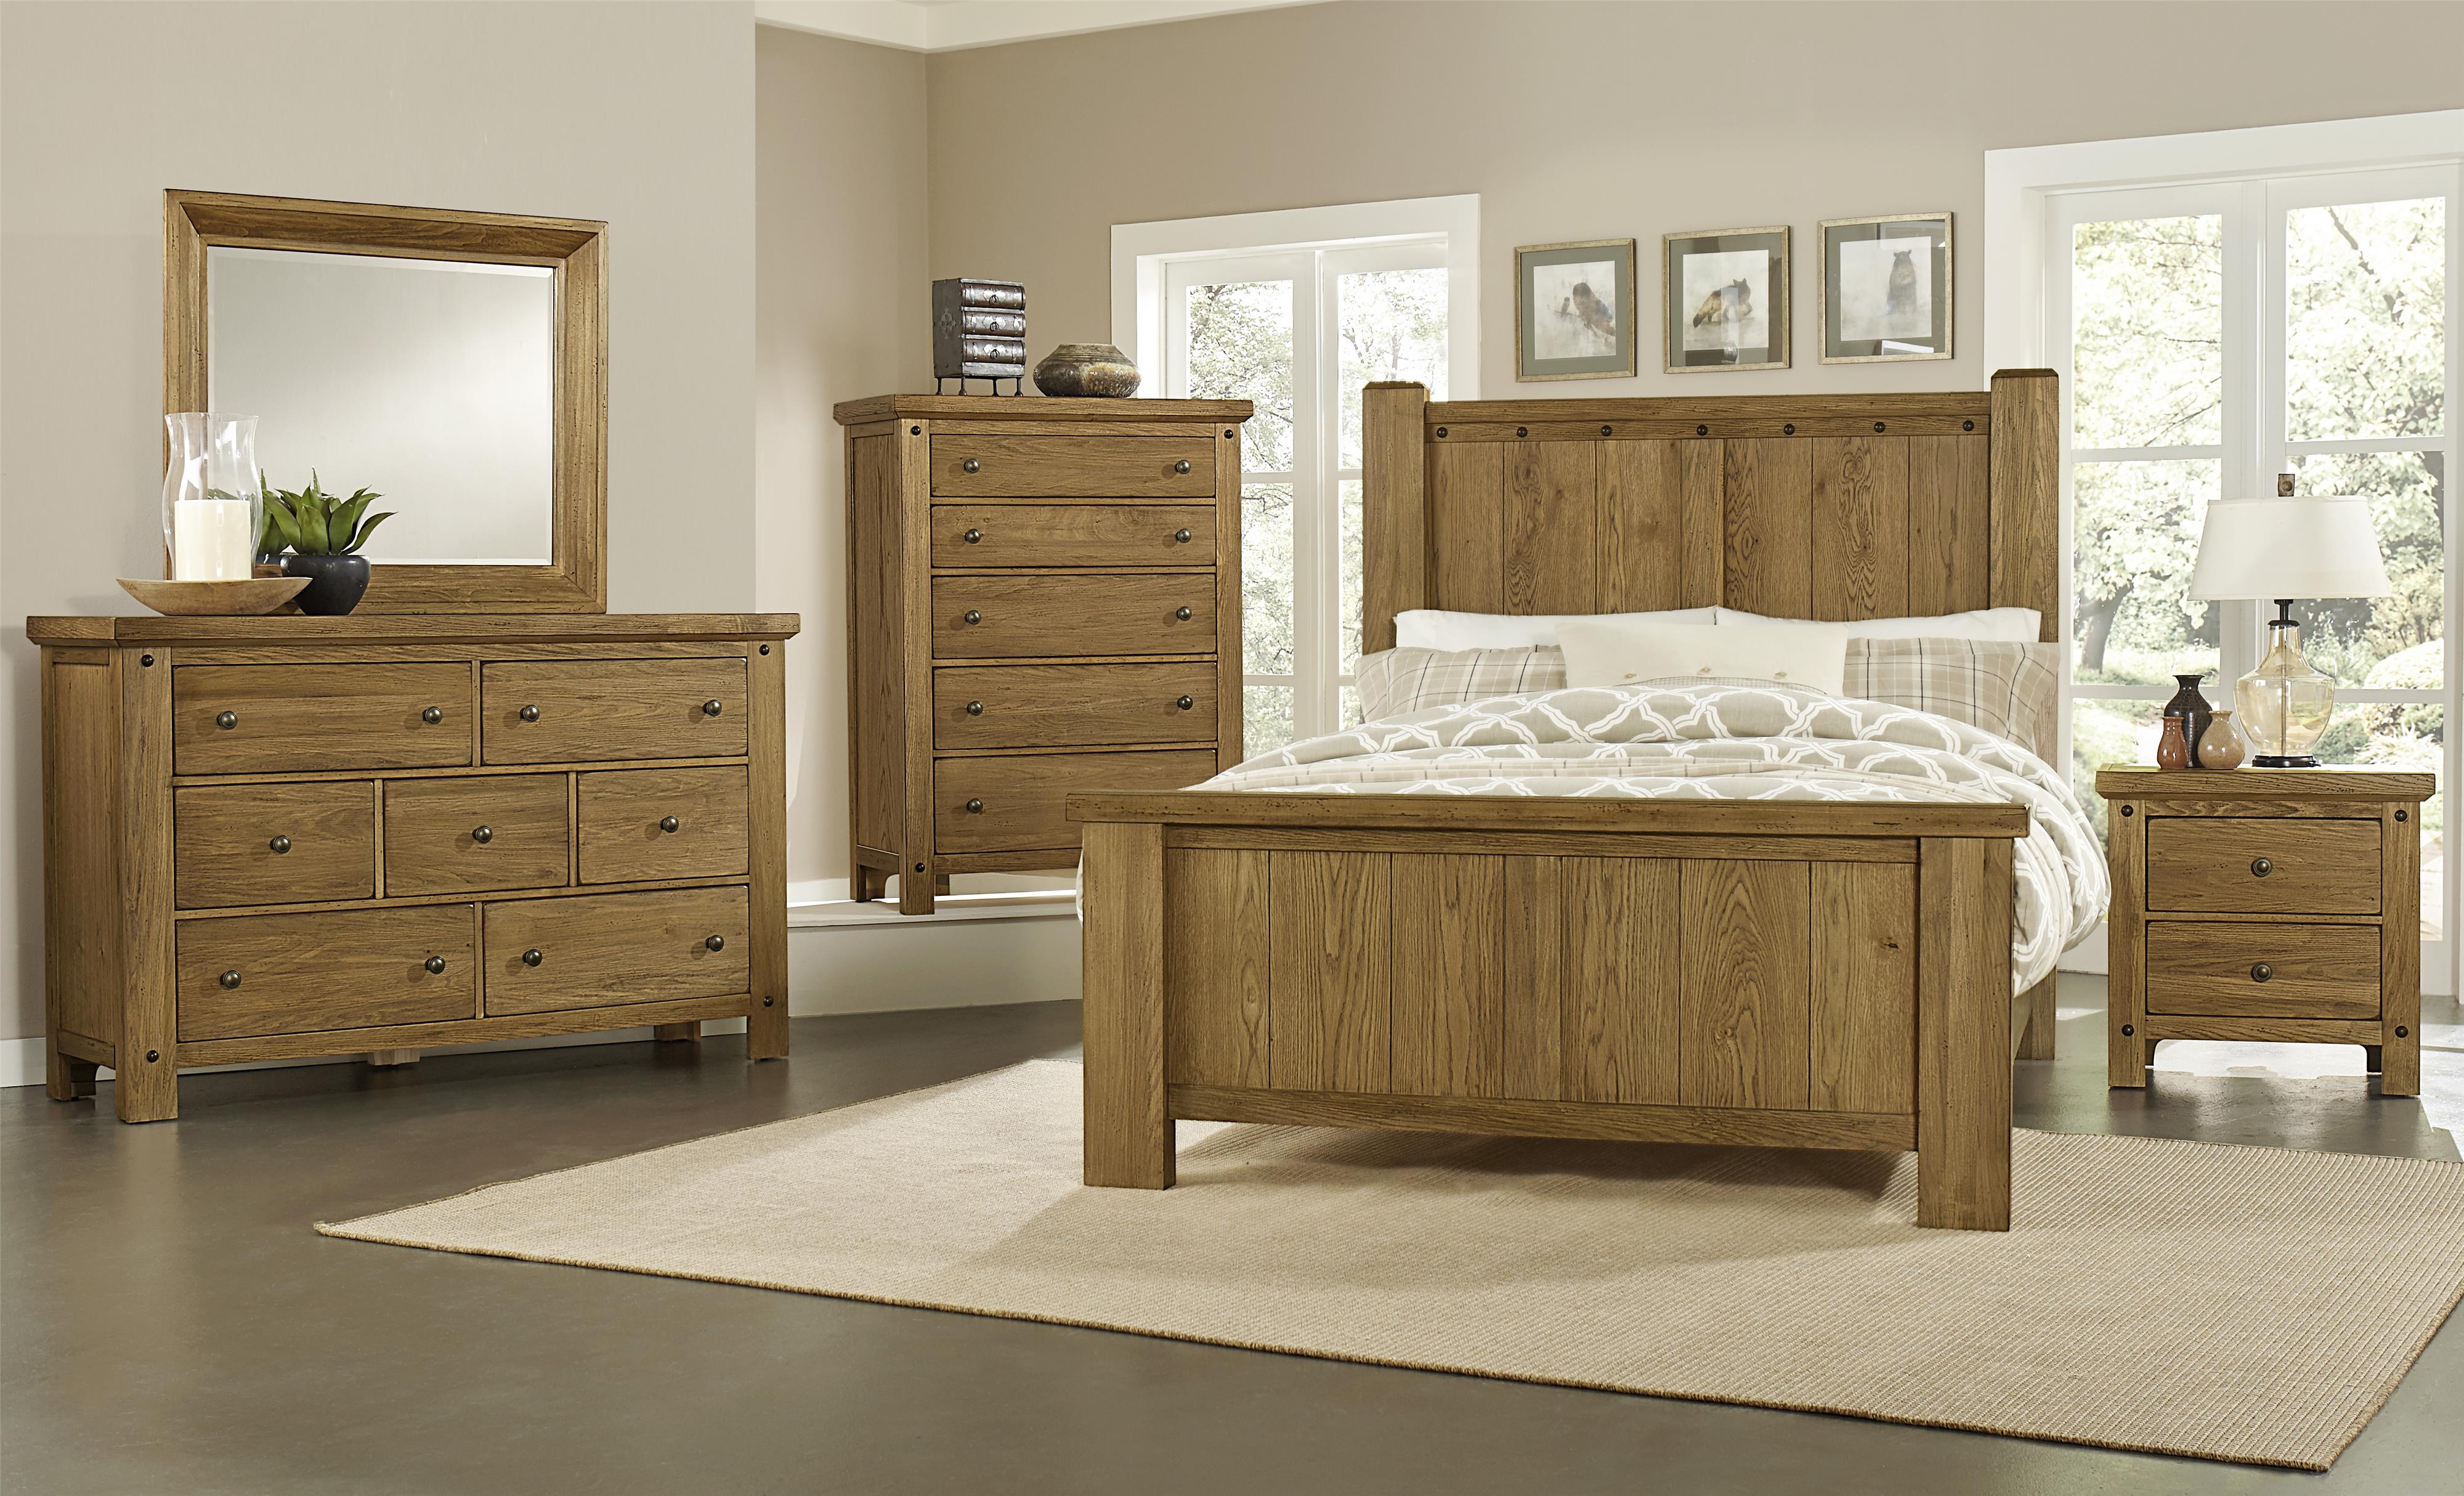 Vaughan Bassett Collaboration King Bedroom Group - Item Number: 614 K Bedroom Group 2